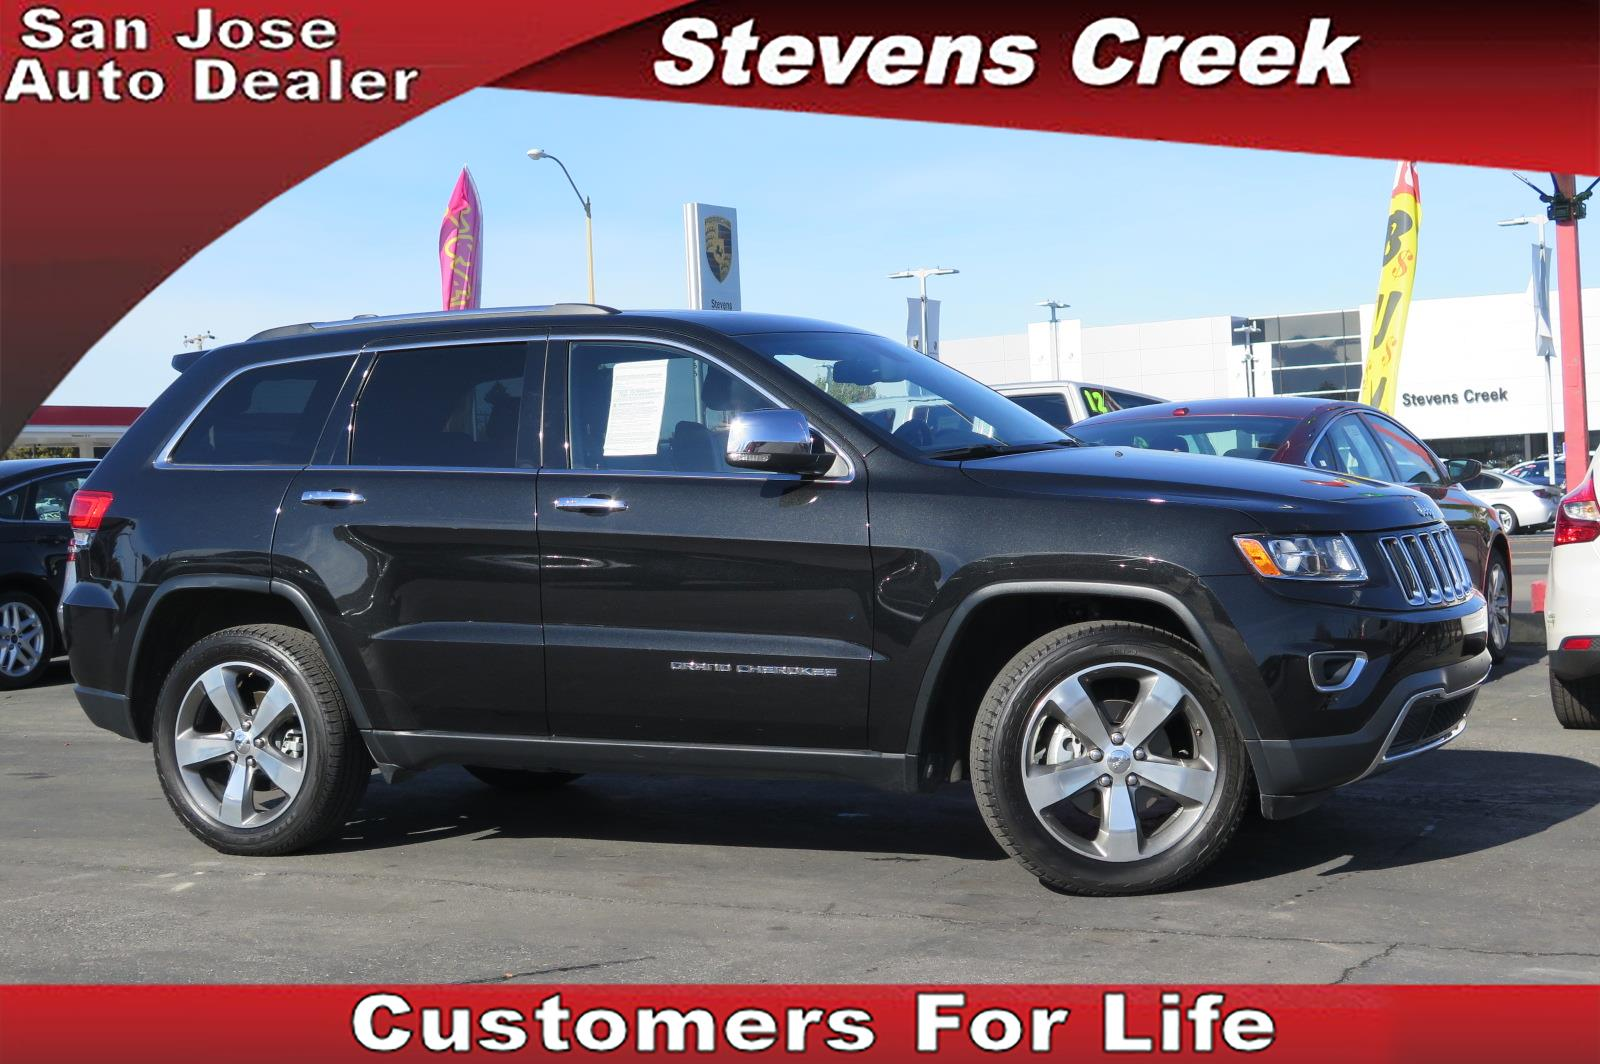 2014 JEEP GRAND CHEROKEE CHEROKEE LIMITED black 36l v6 automatic retained accessory power  re